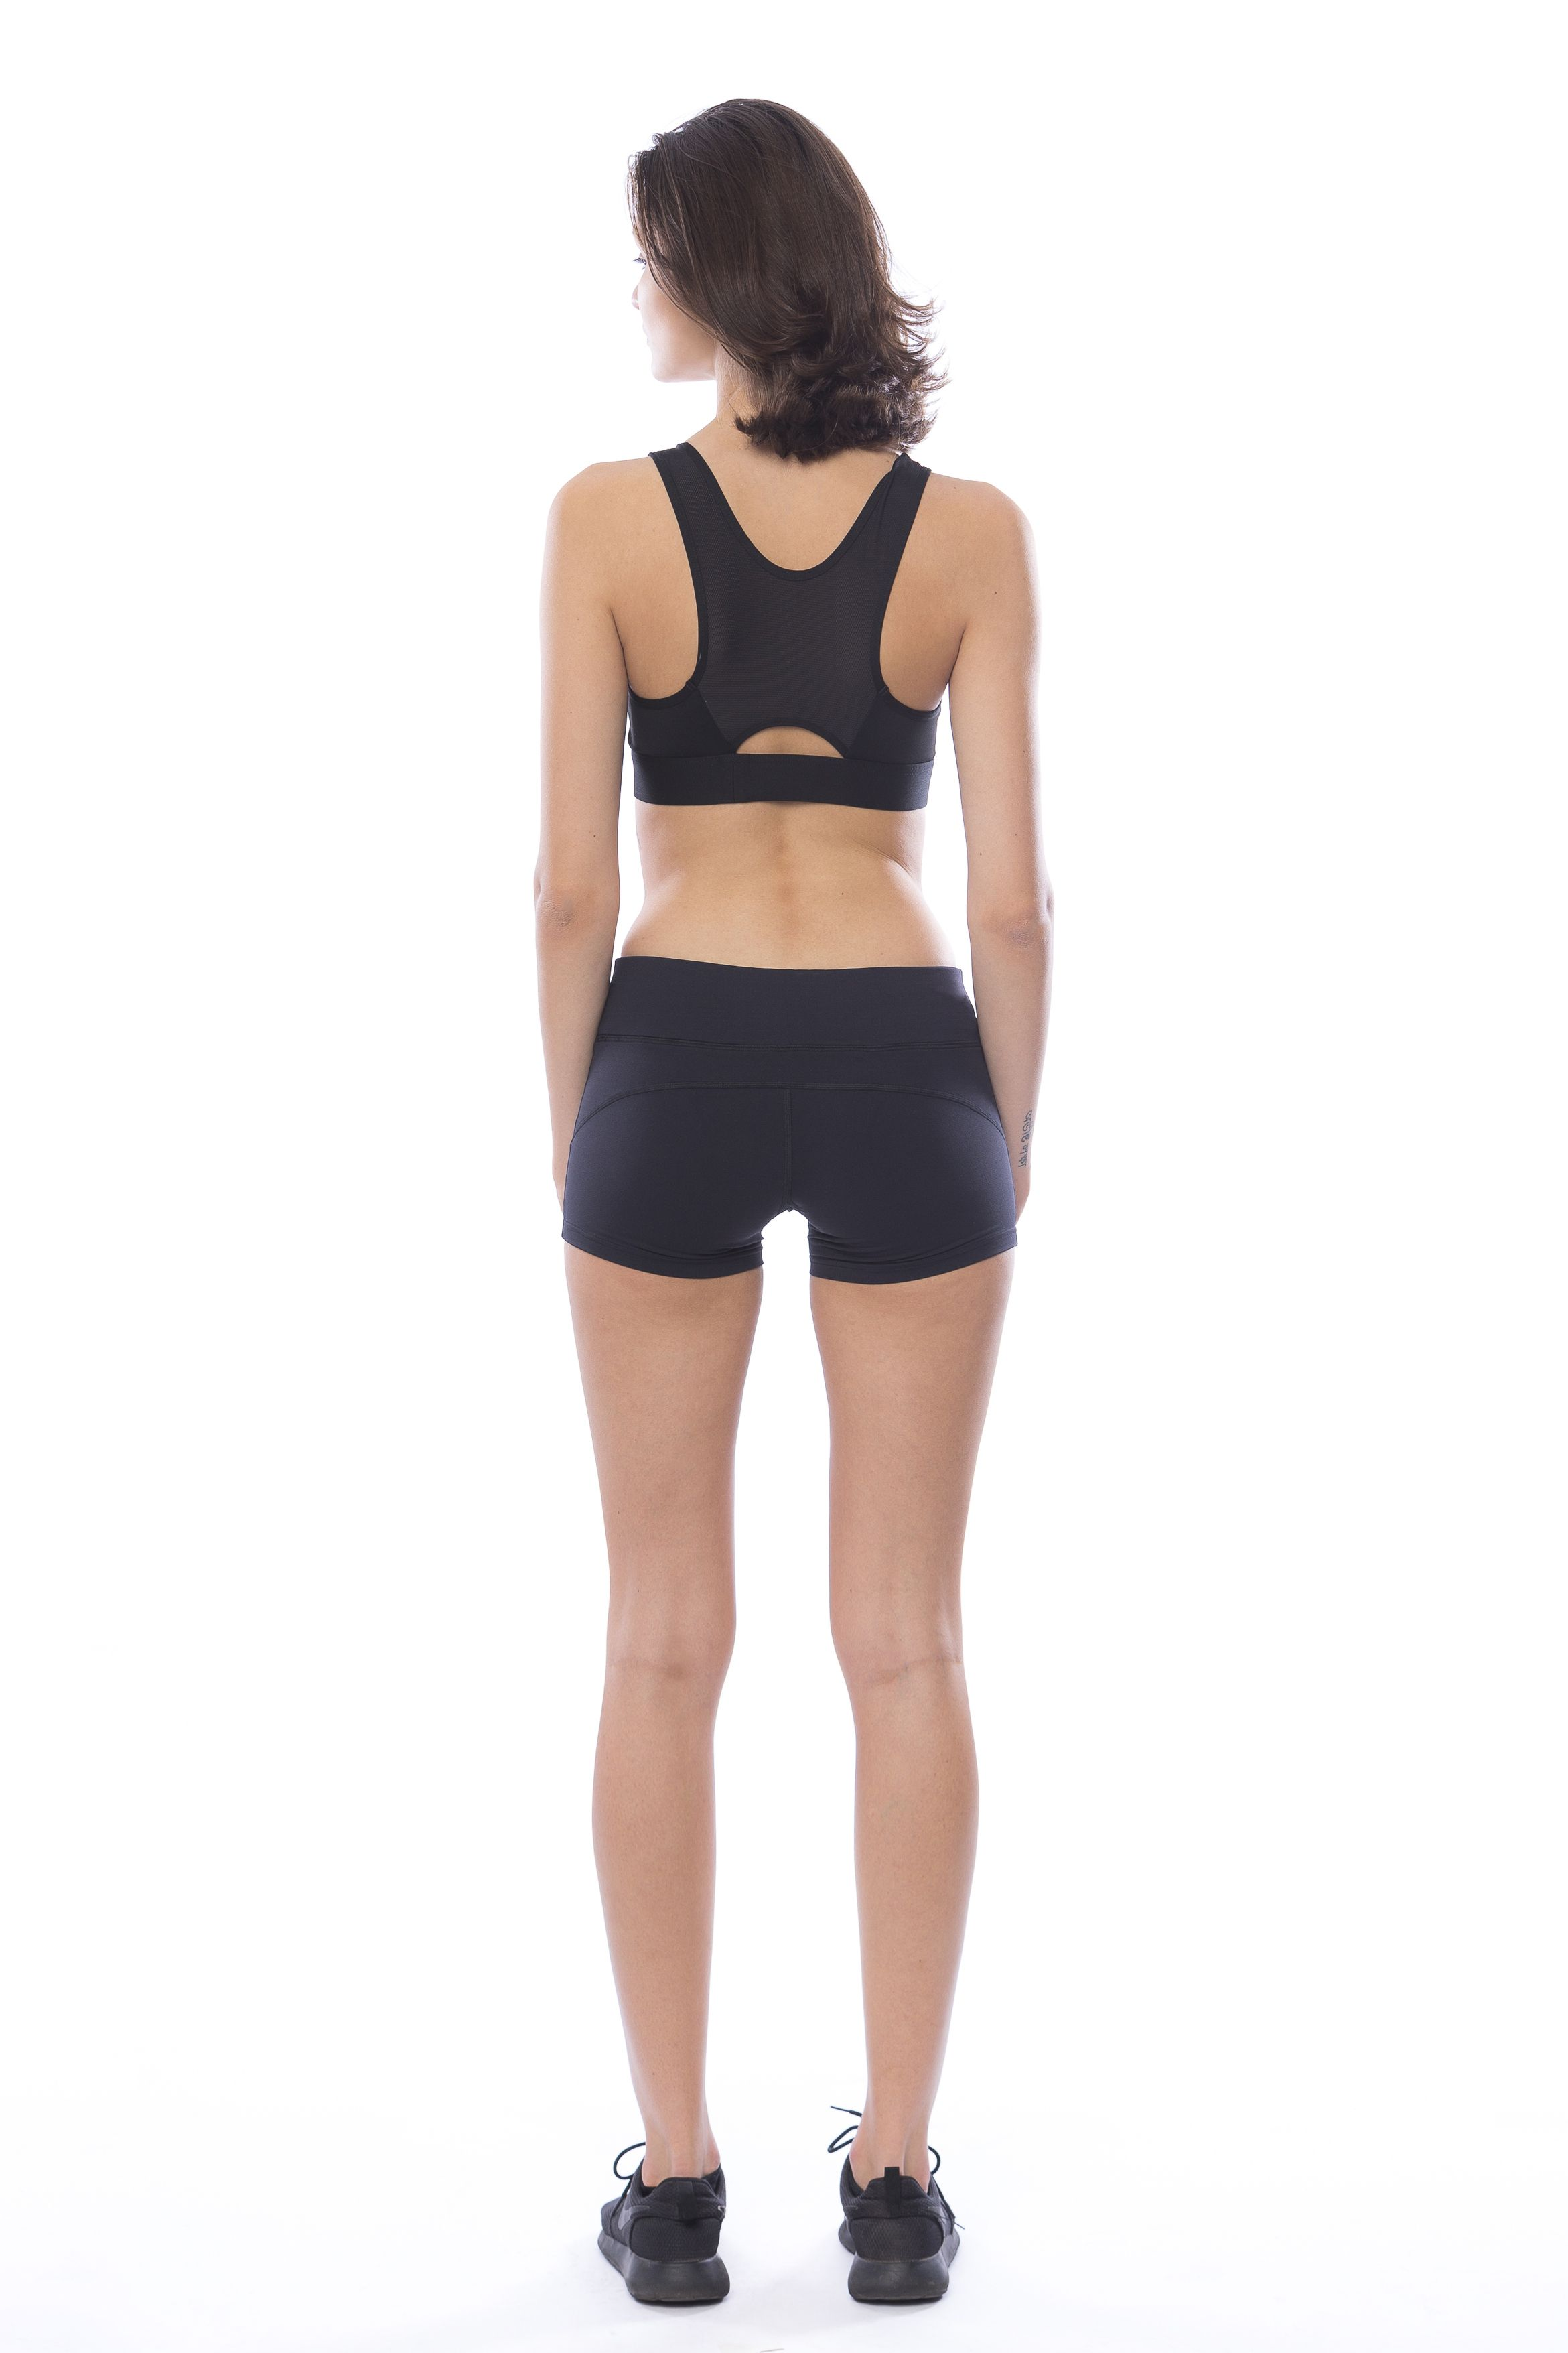 The Secret Of Great Style Is To Feel Good In What You Wear Fullcommando Fullcommandoshorts Activew Active Outfits Gym Shorts Womens Volleyball Shorts